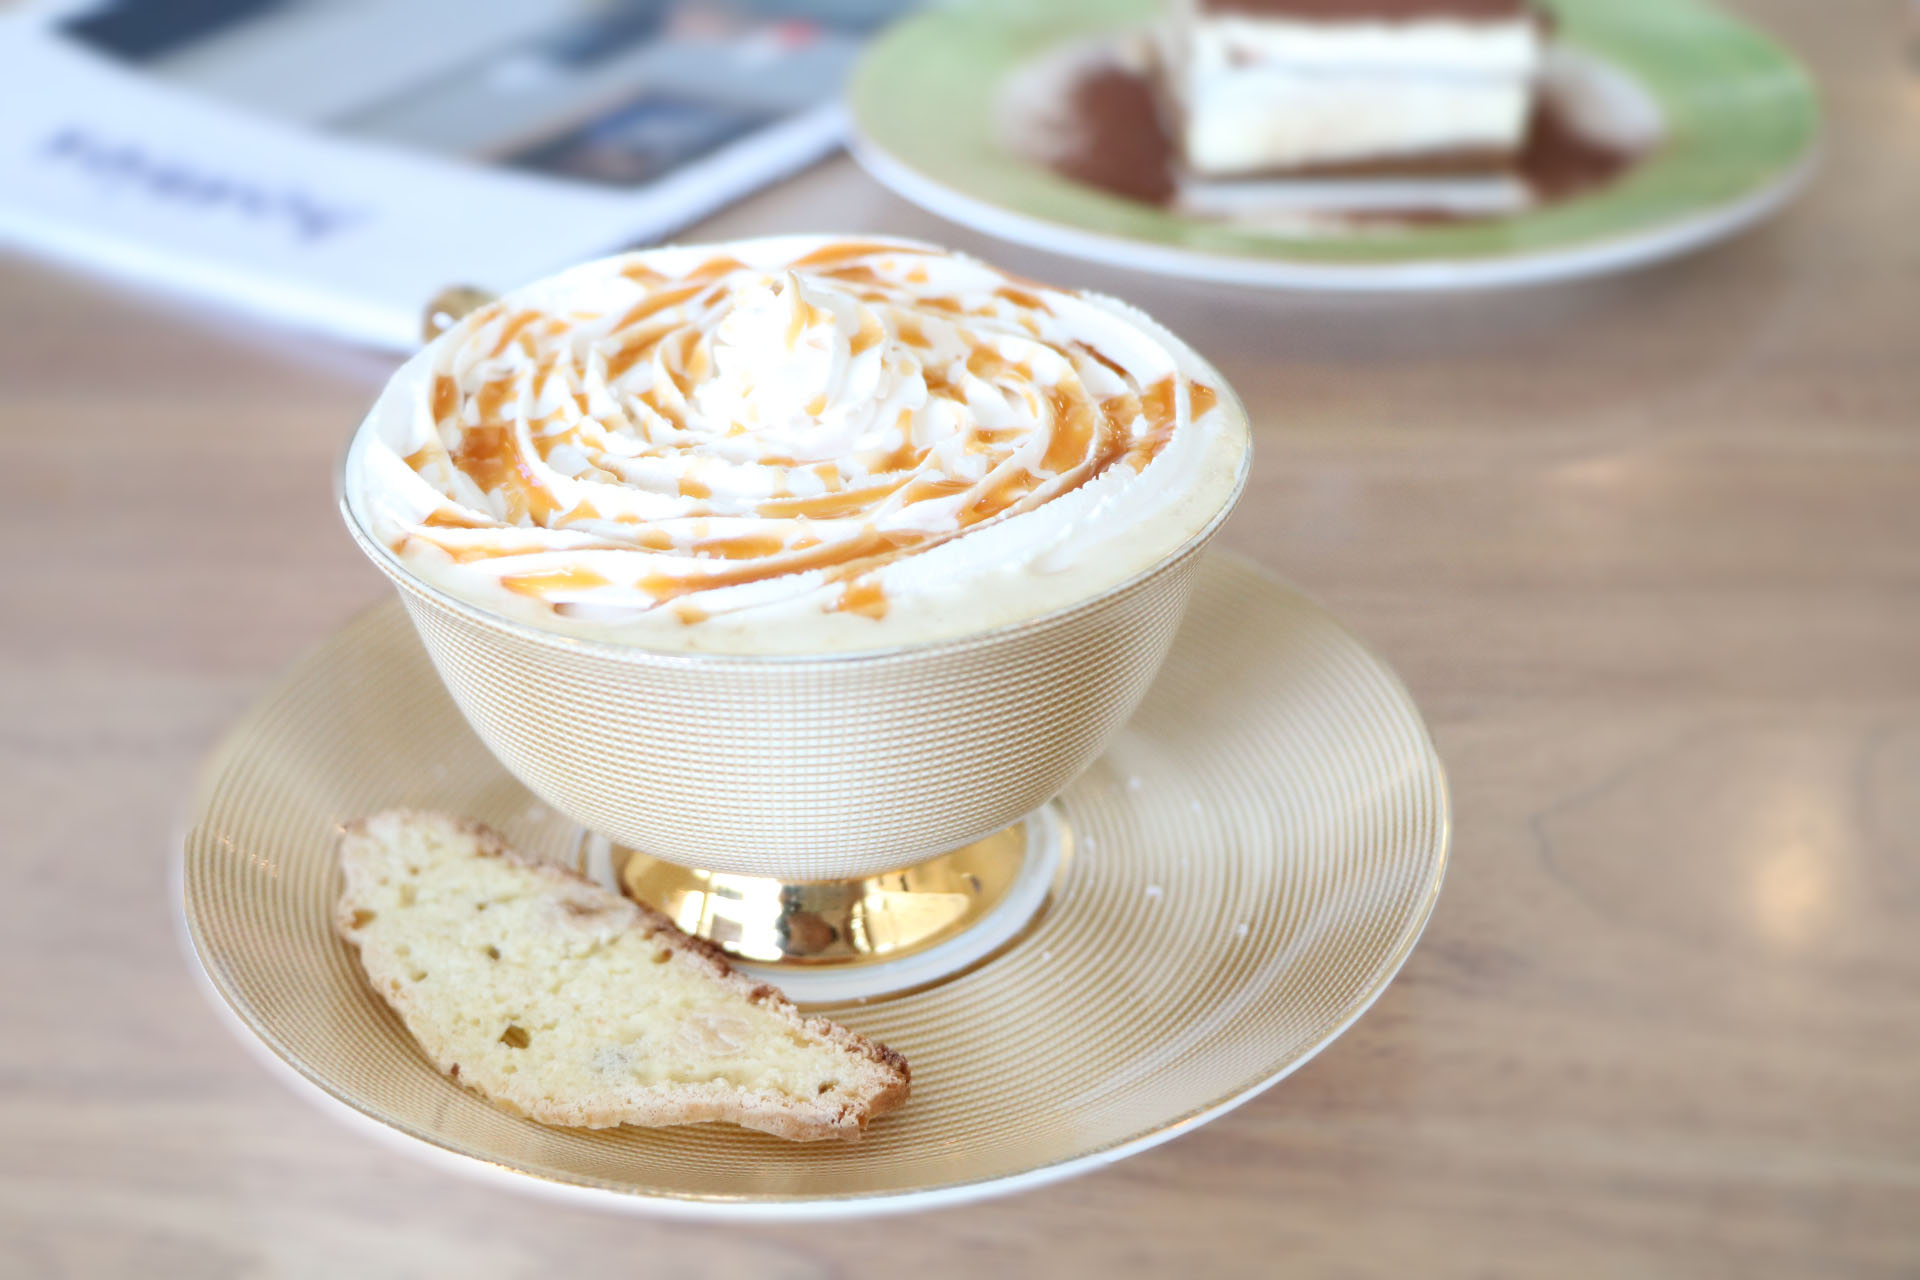 """Salted Caramel Macchiato  I usually skip things  caramel because most of them tend to be super sweet. Rather impressed by this cuppa because it is not too sweet and brings out a very smooth texture. Bonus points for the tea cup!I was telling Koon..""""Let's call this The Aladdin Coffee!"""""""